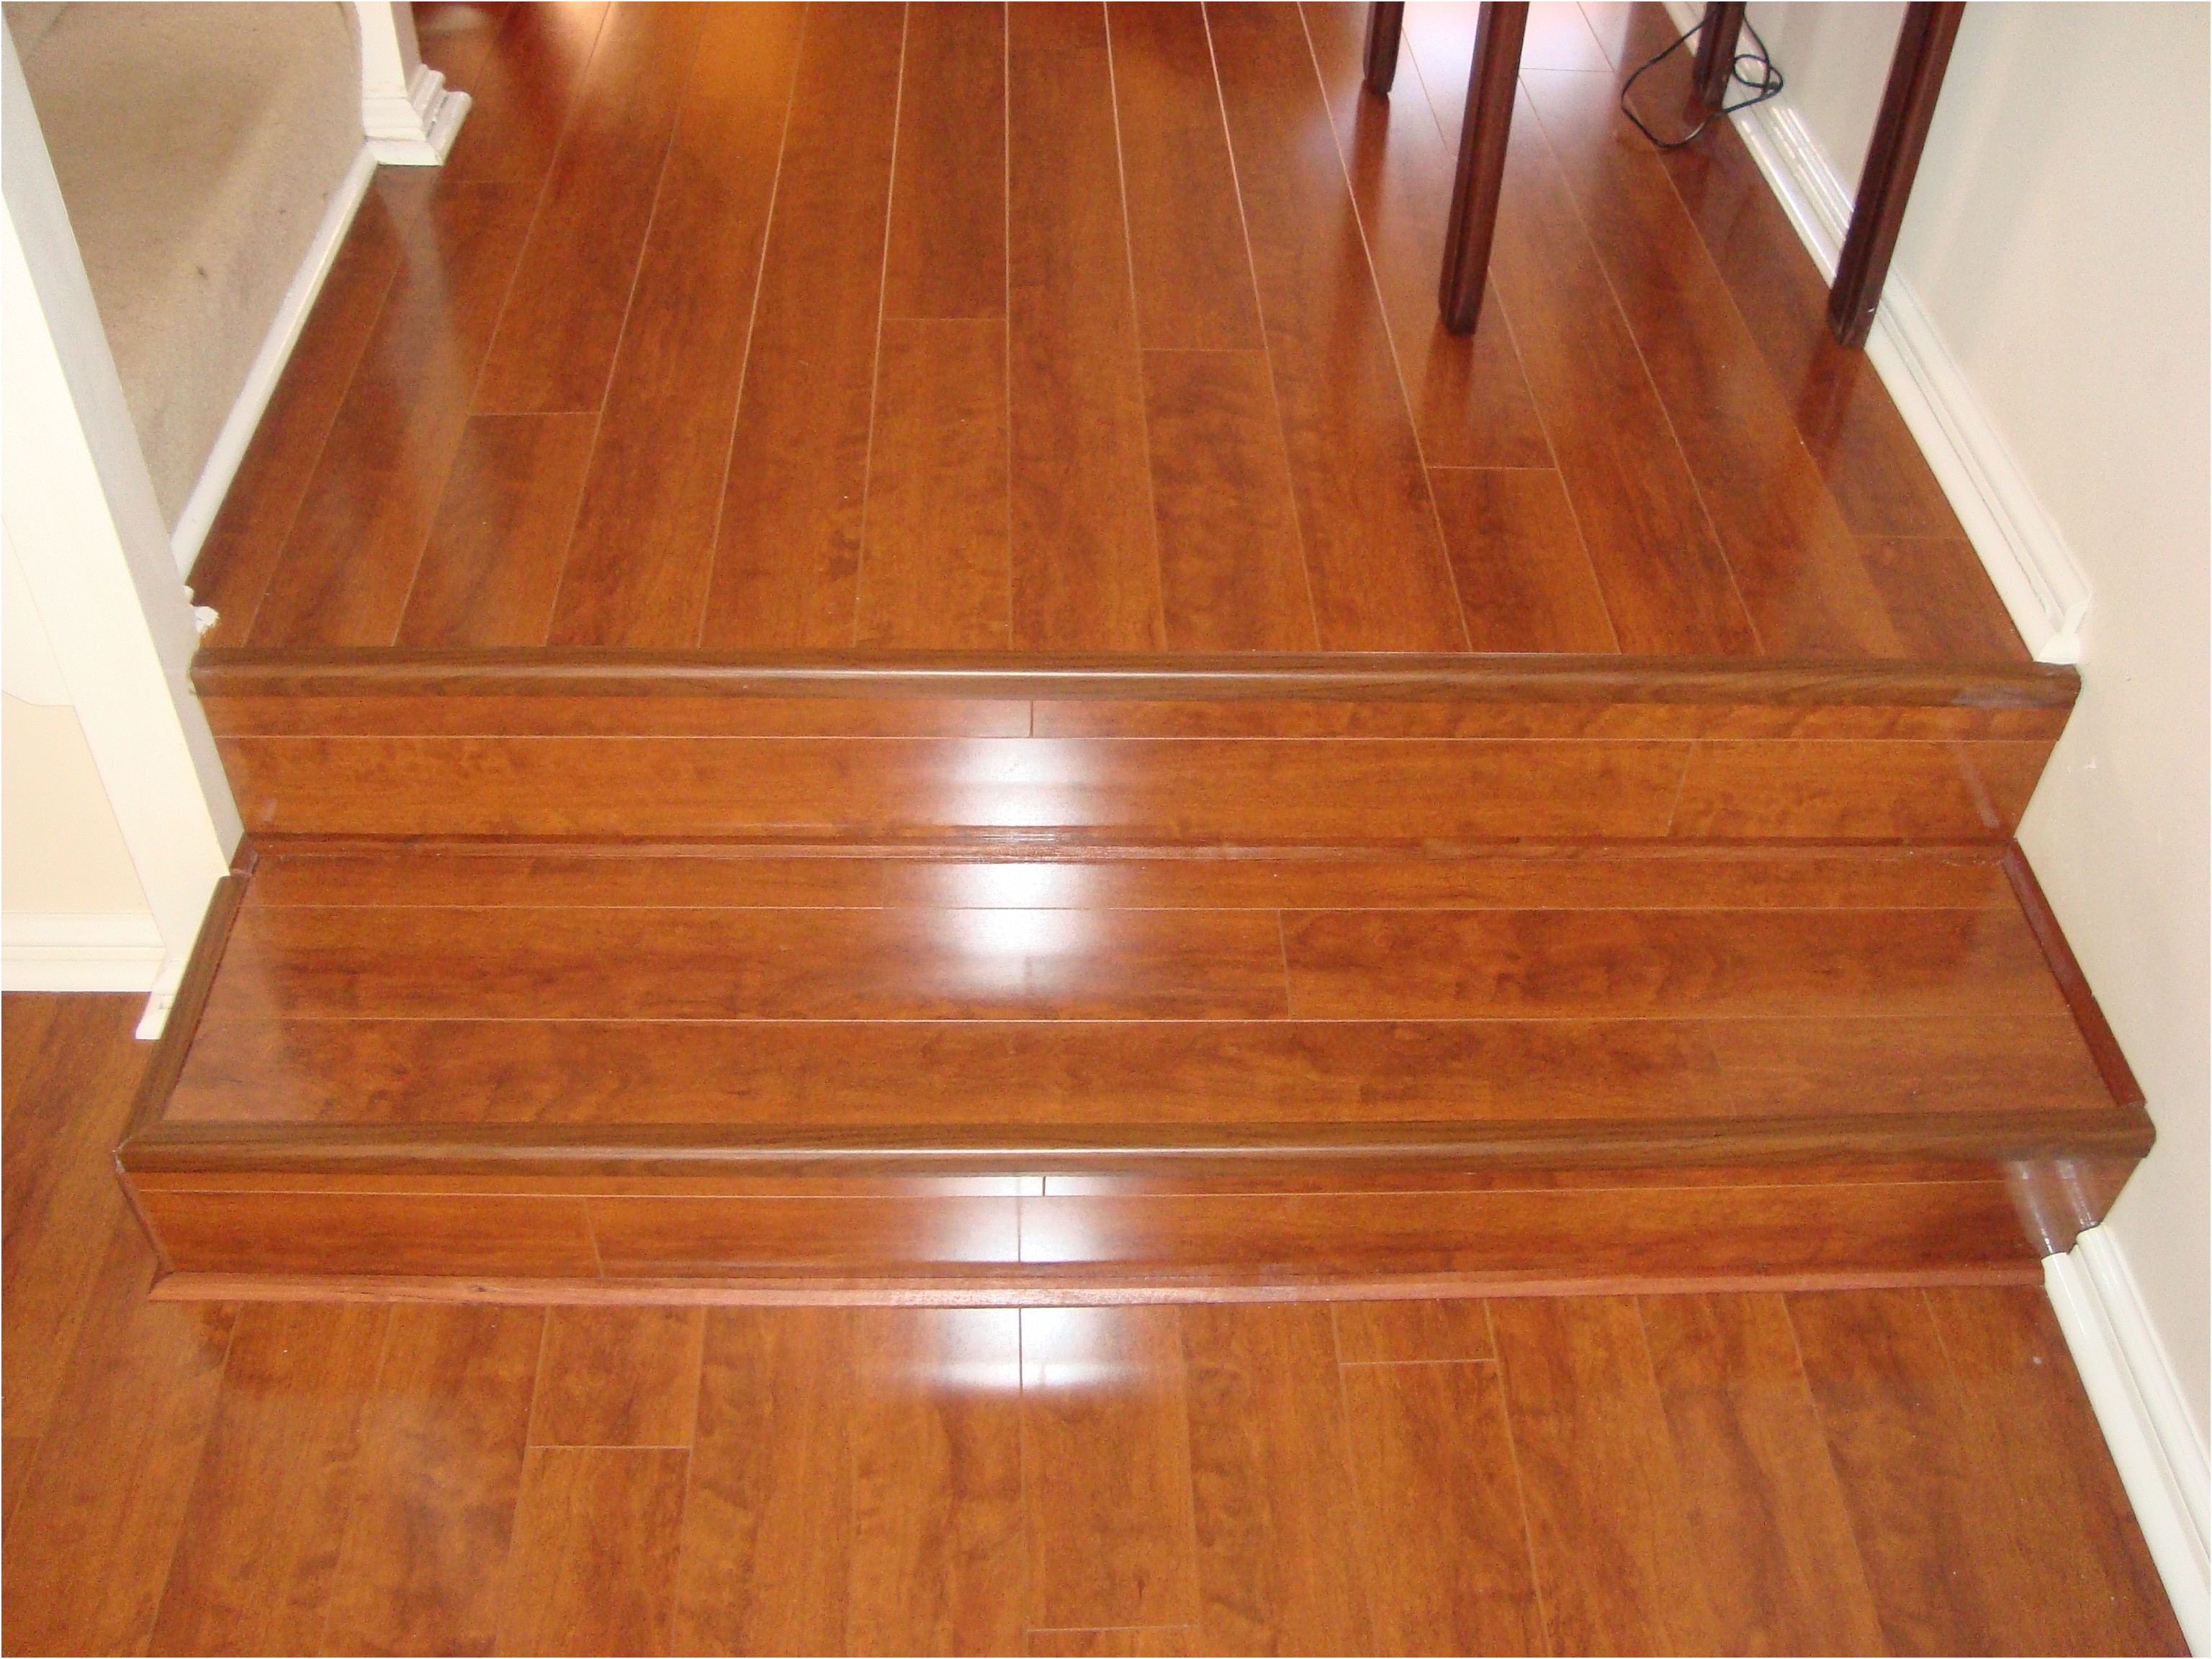 costco hardwood flooring cost of costco laminate wood flooring review lovely engineered hardwood intended for costco laminate wood flooring review luxury costco flooring installation pergo laminate reviews hardwood vs with of